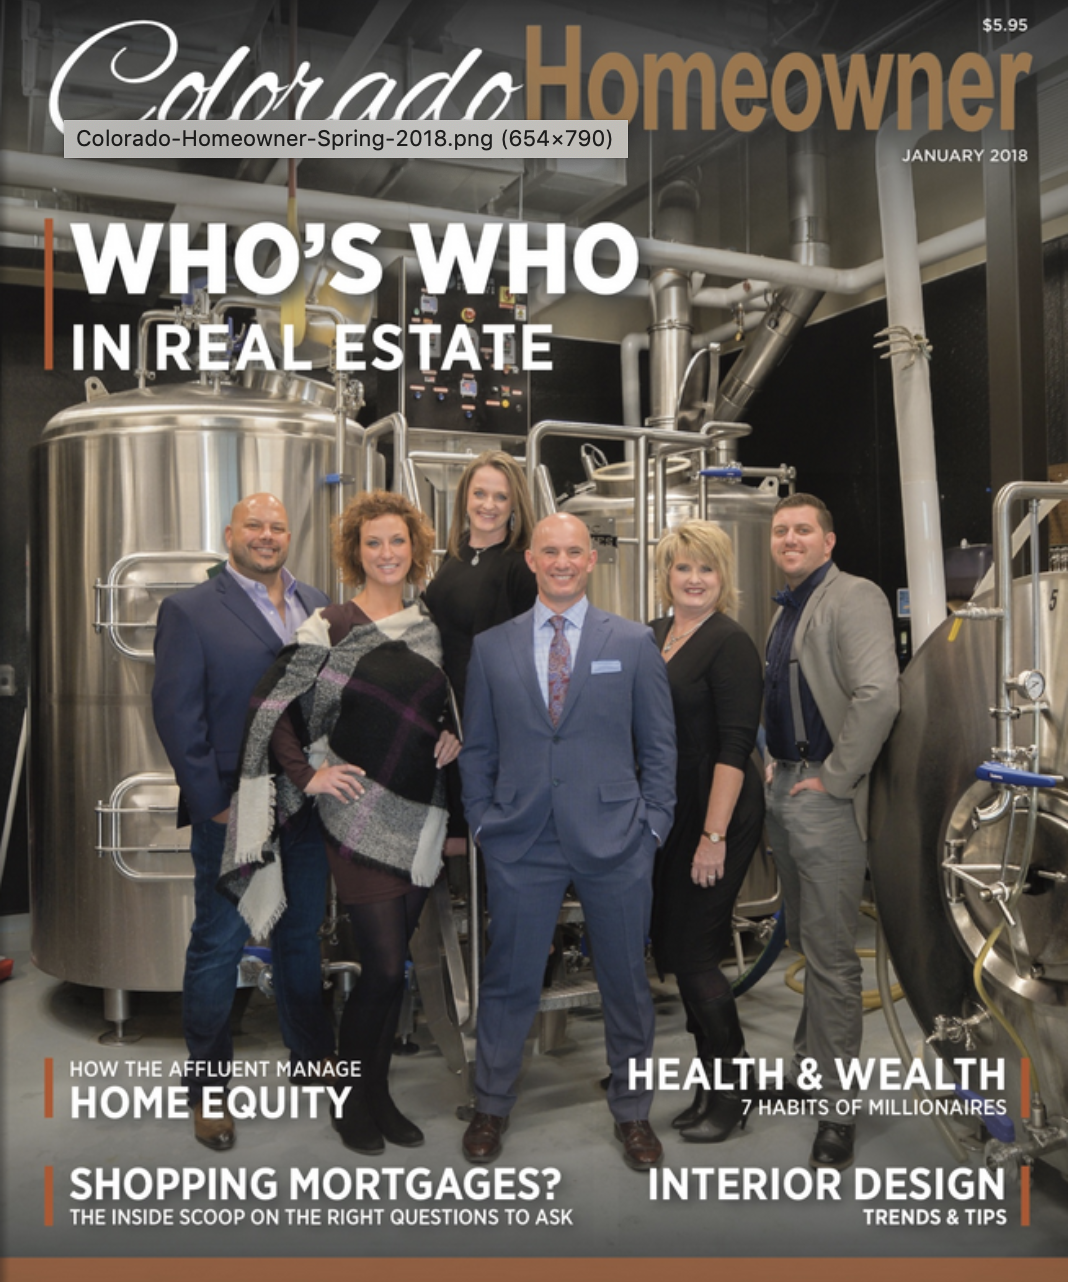 Colorado Homeowner Magazine: Who's Who in Real Estate